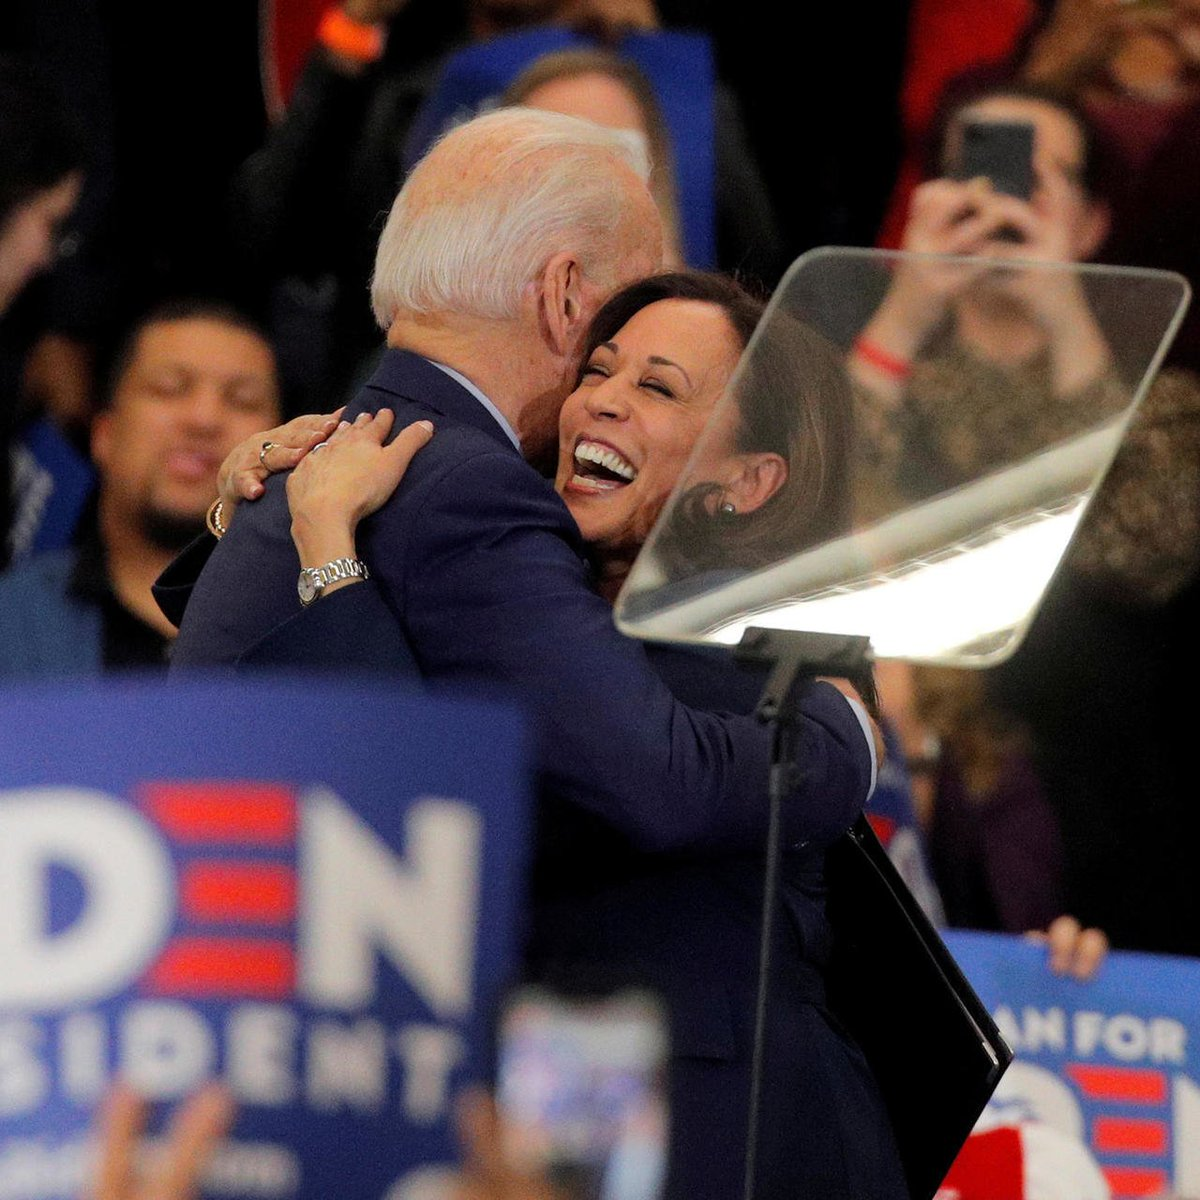 Dear friends: Whatever your political leanings, let us pray today for @JoeBiden, who becomes the second Catholic president; and @KamalaHarris, who becomes the first woman vice president. May God bless them and may they govern with justice, mercy and compassion. #InaugurationDay